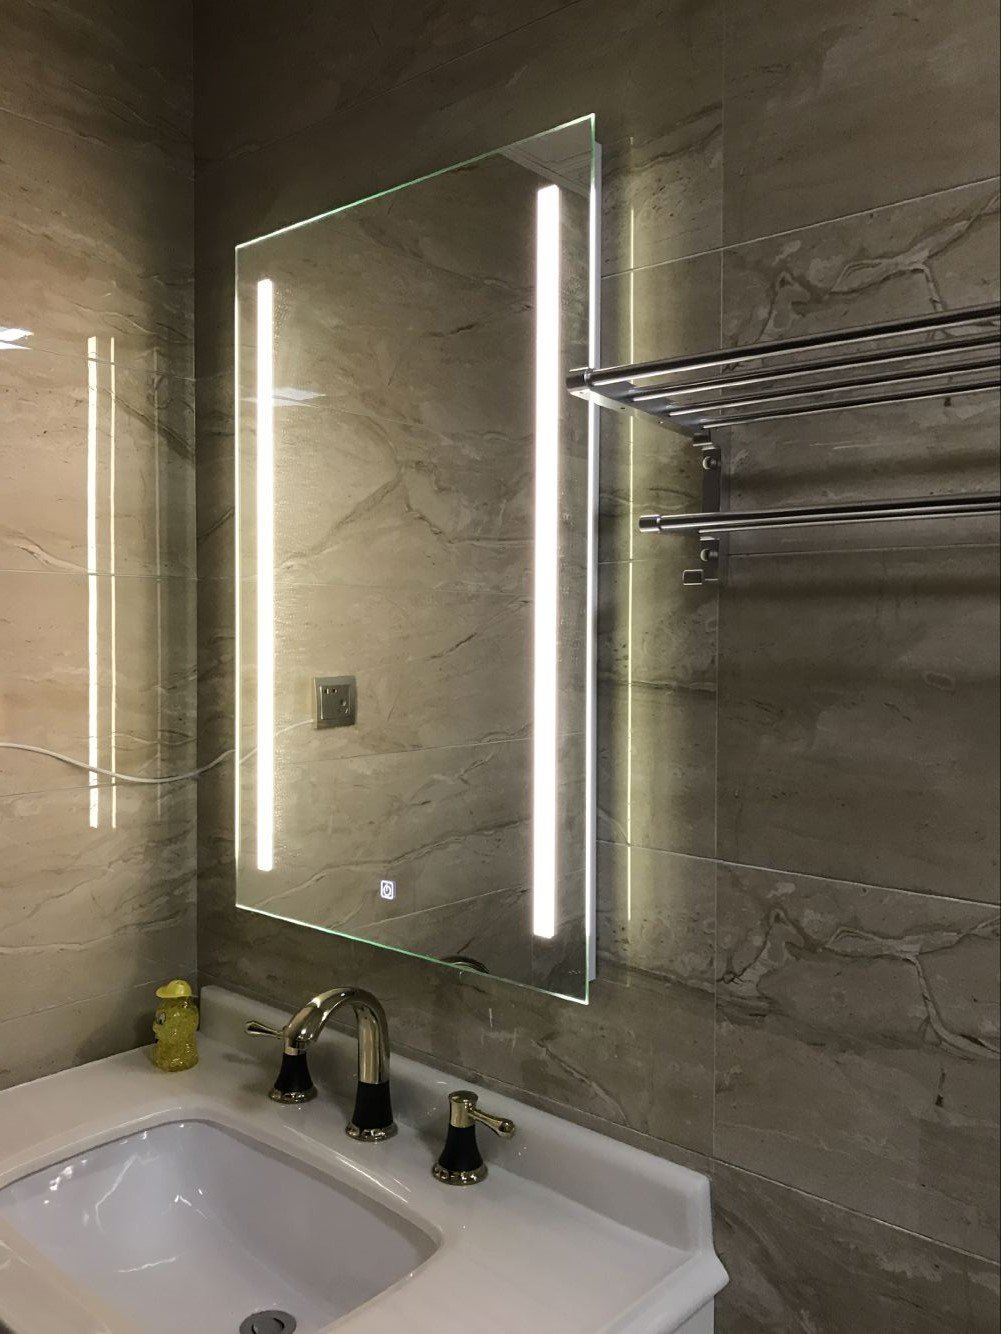 DIYHD W36'' X H36'' Wall Mount Led Lighted Bathroom Mirror Vanity Defogger 2 Vertical Lights Rectangular Touch Light Mirror